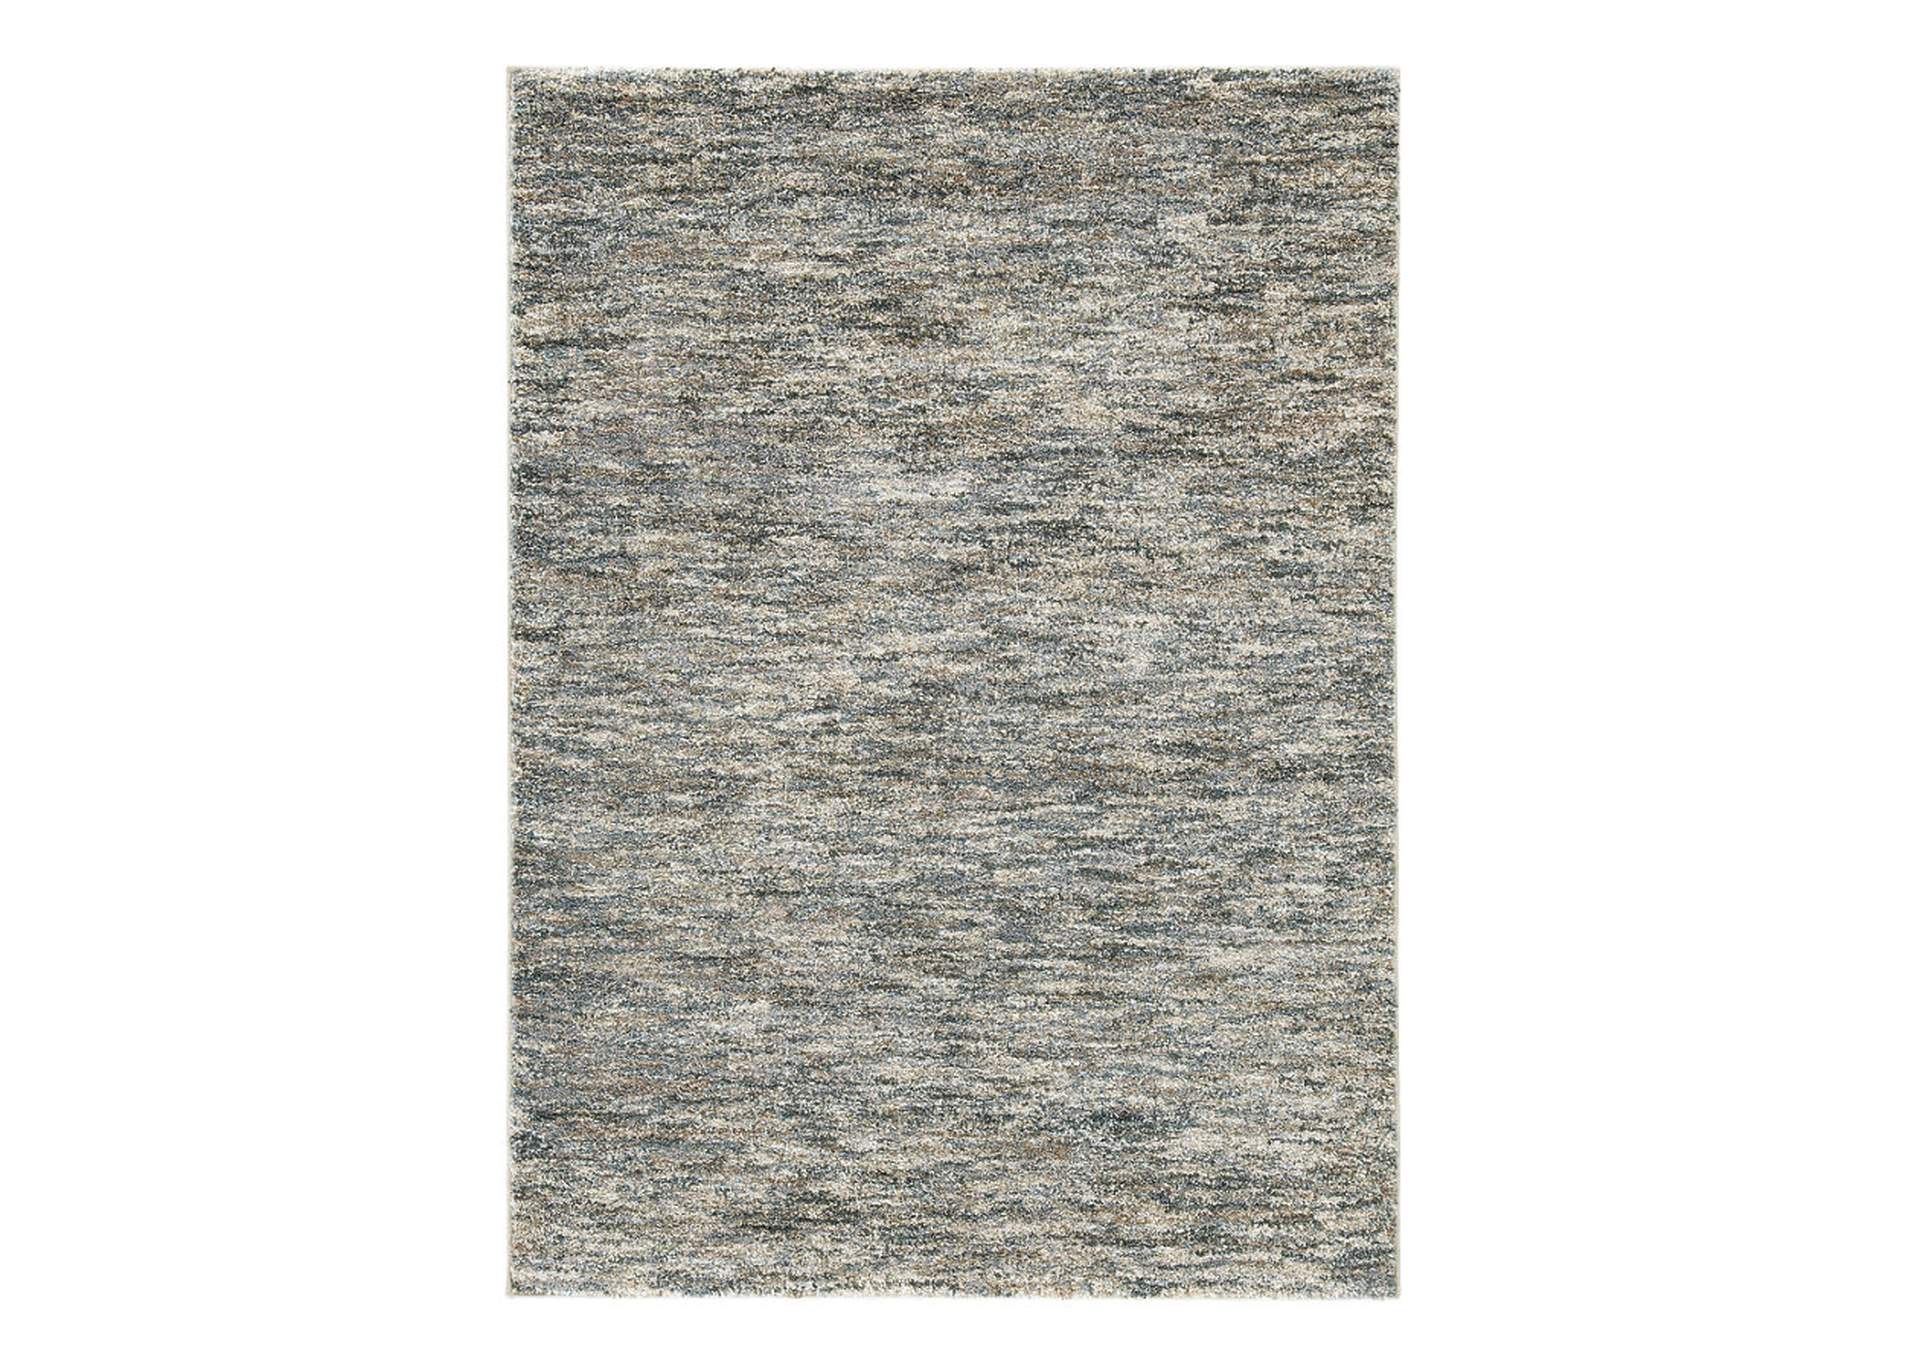 Marnin Tan/Blue/Cream Large Rug,Signature Design By Ashley